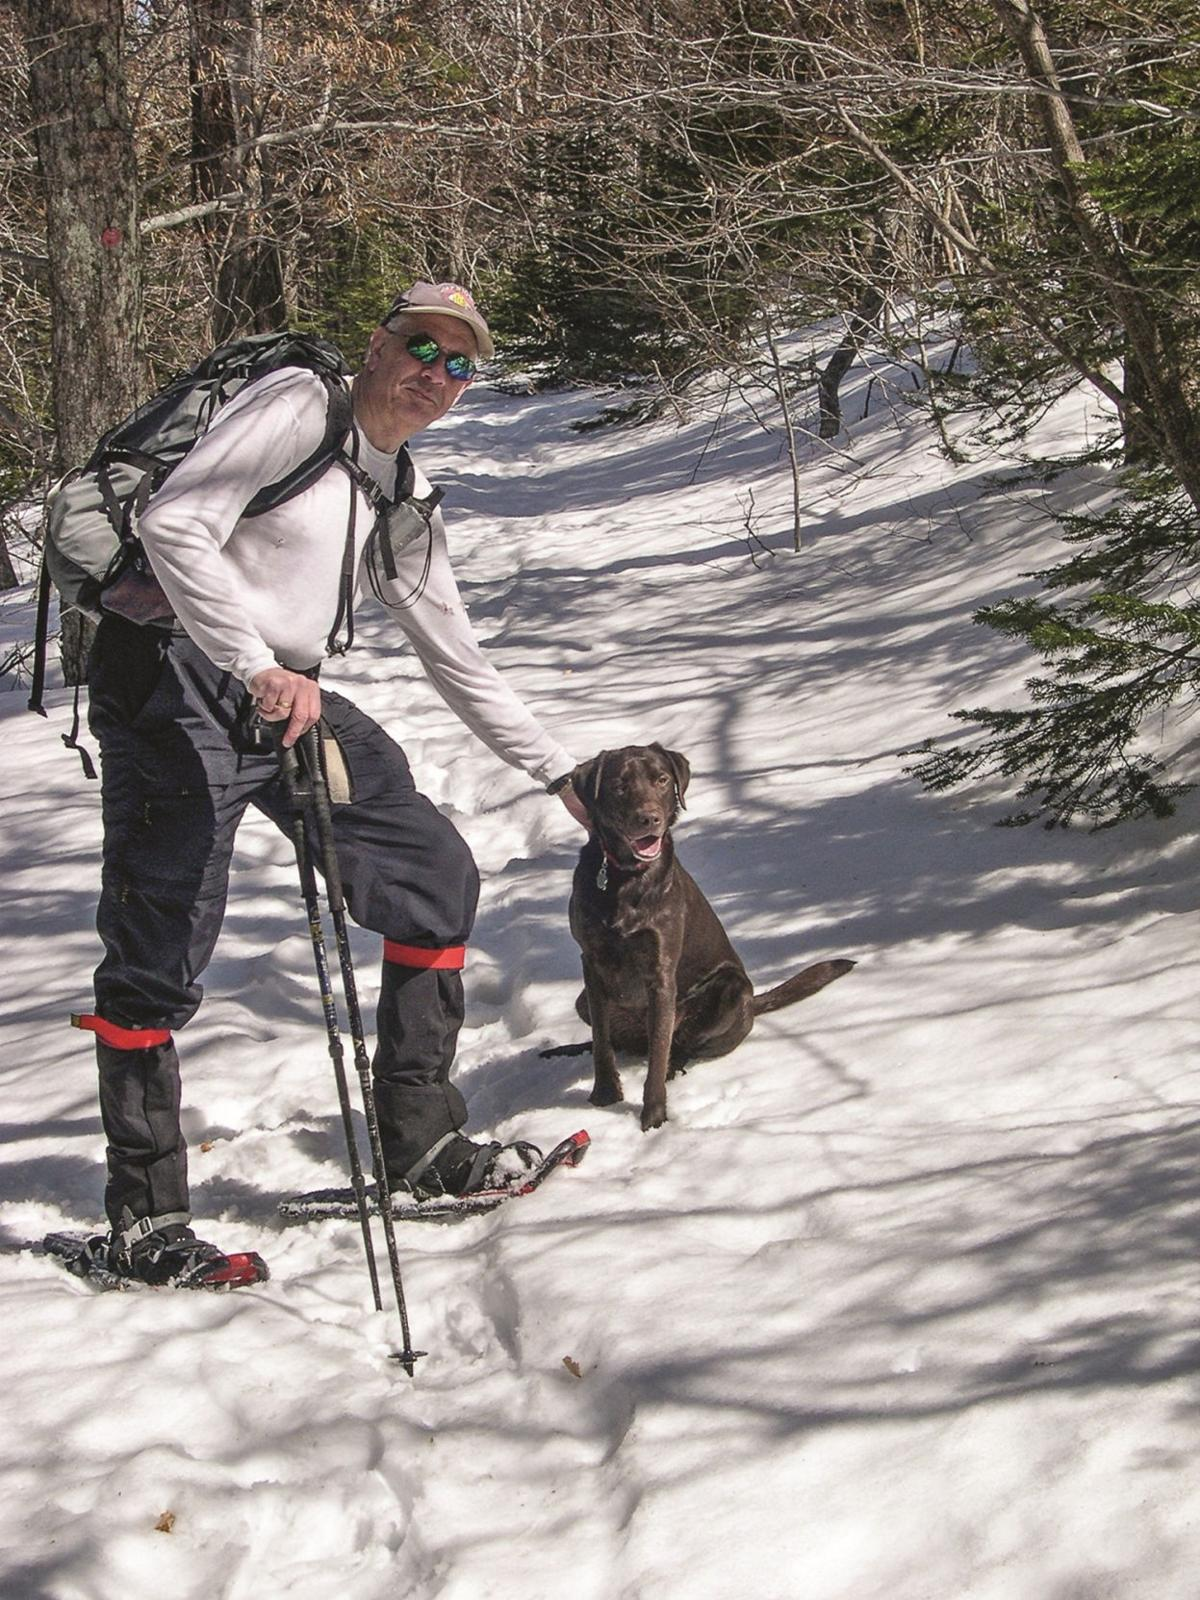 Guide for treking the trail on 2 feet or 4